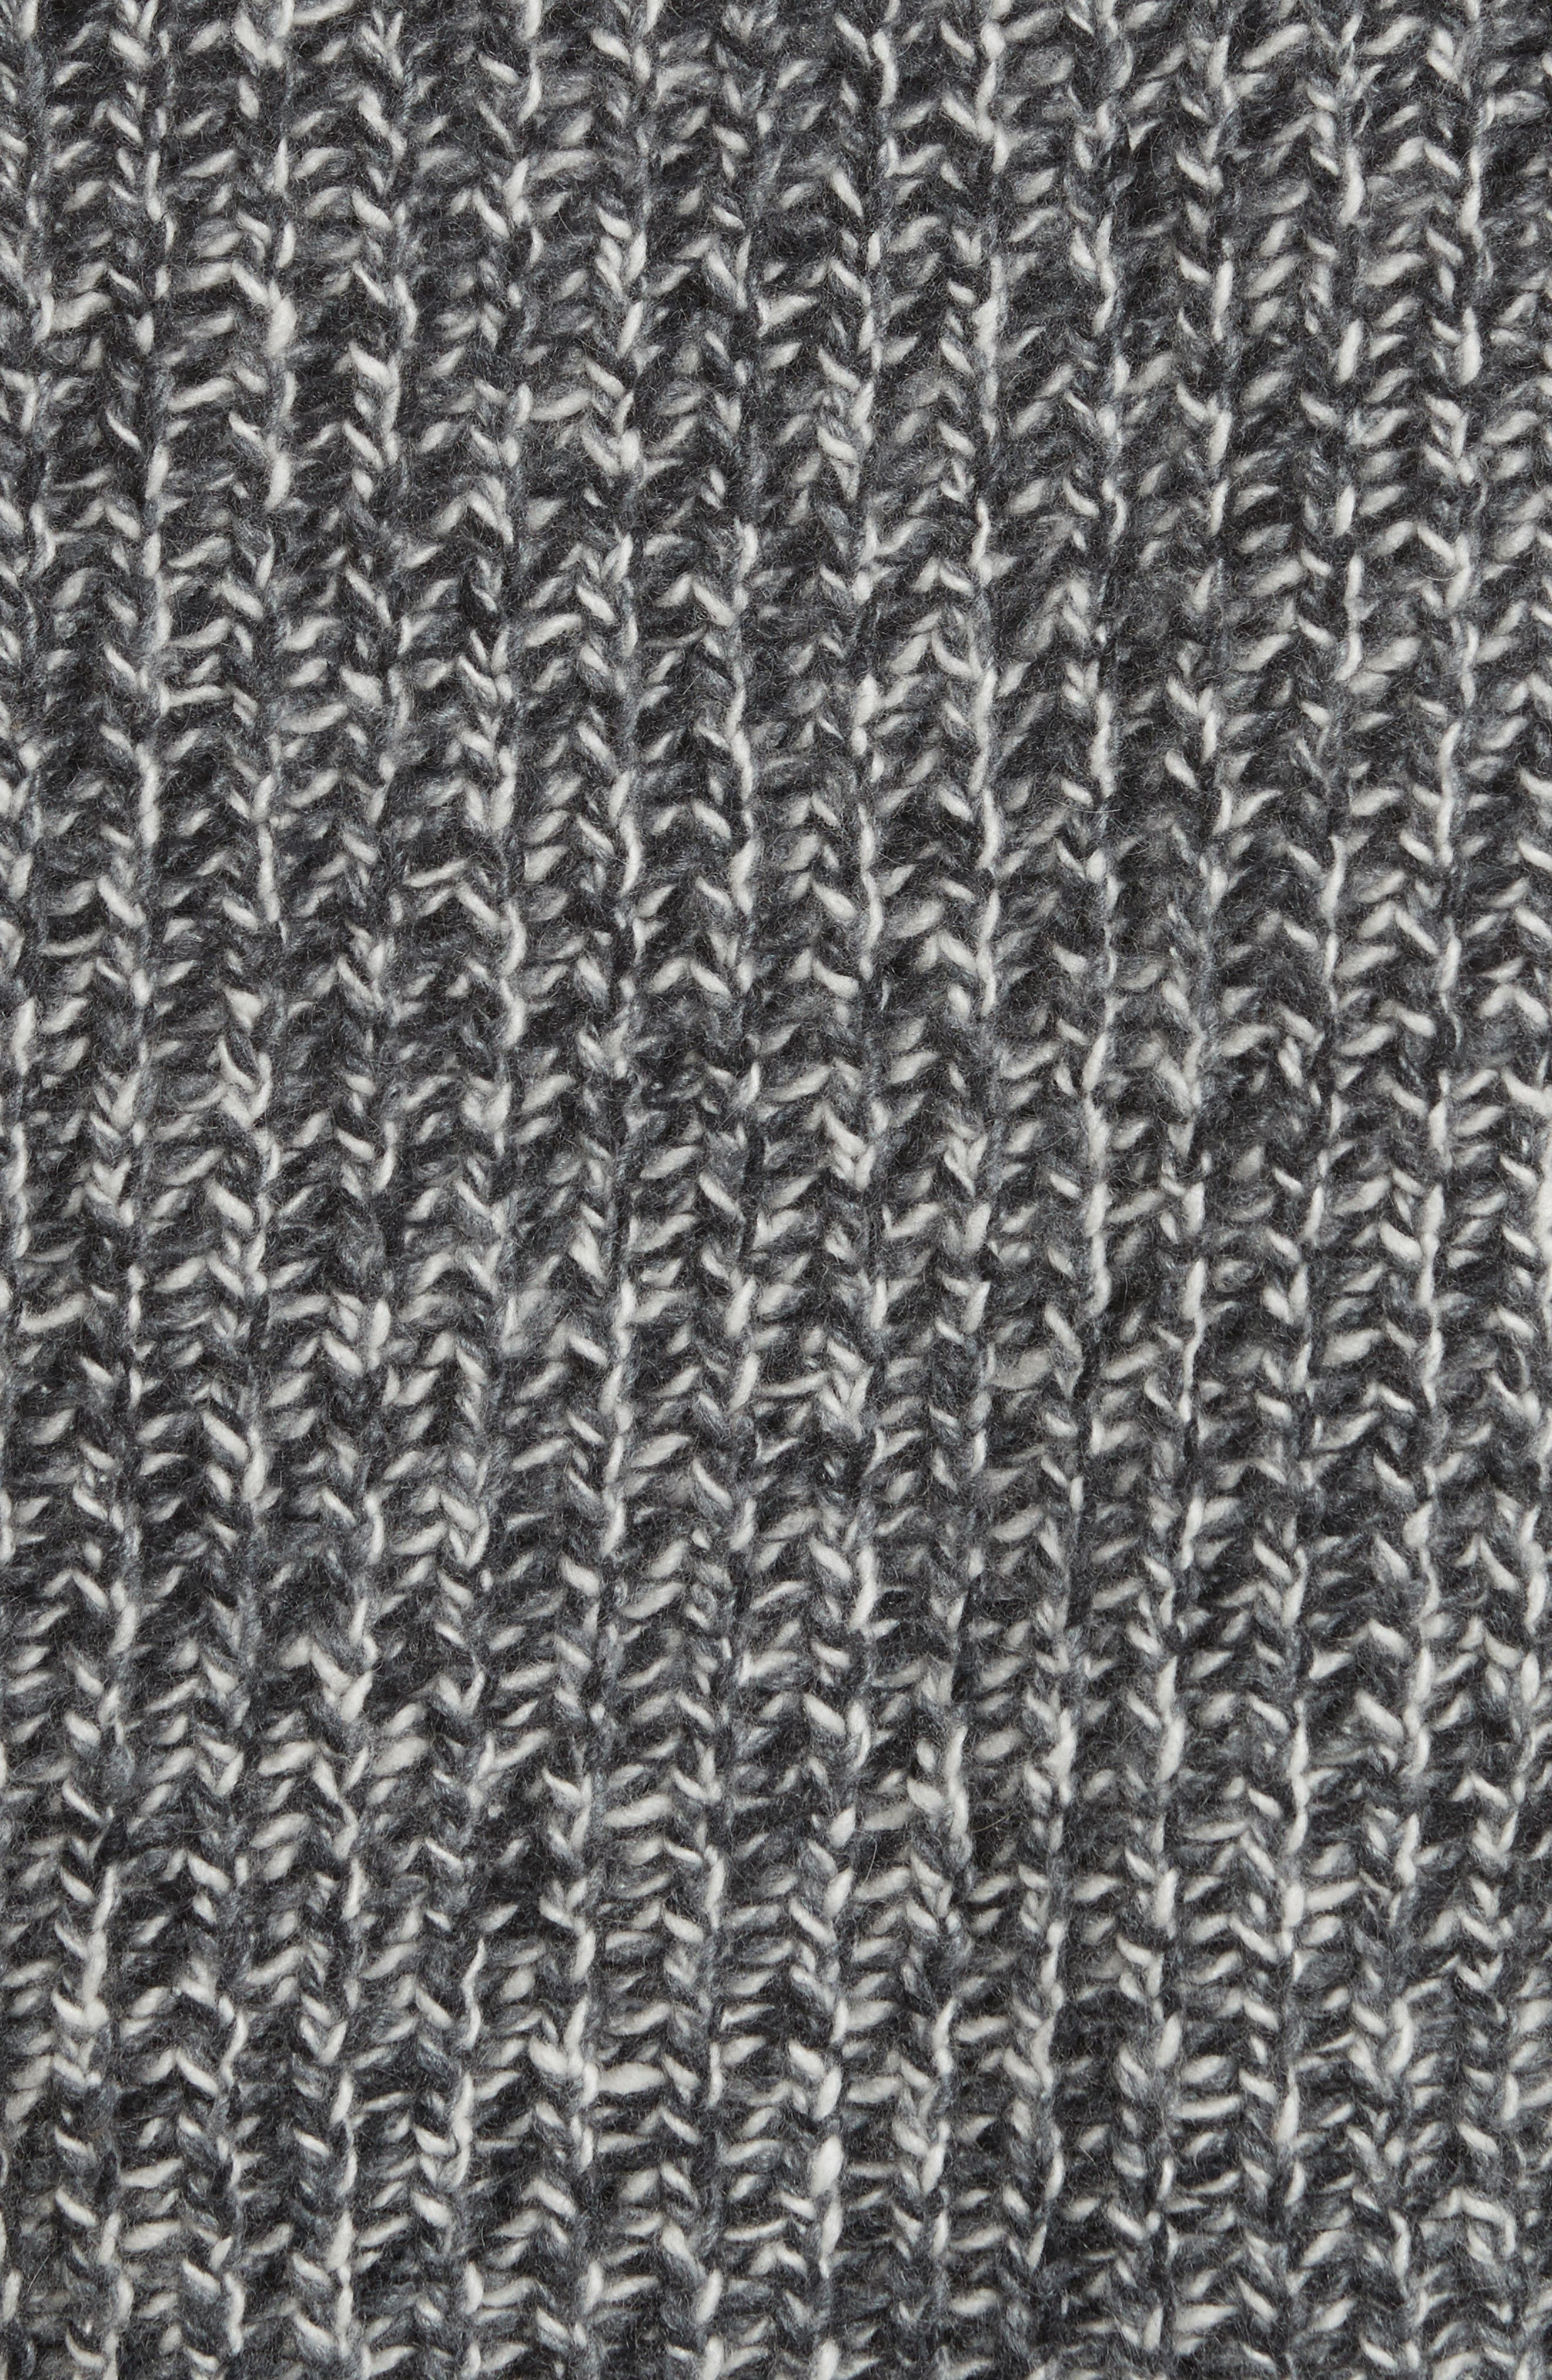 Marled Wool Blend Sweater,                             Alternate thumbnail 6, color,                             Grey